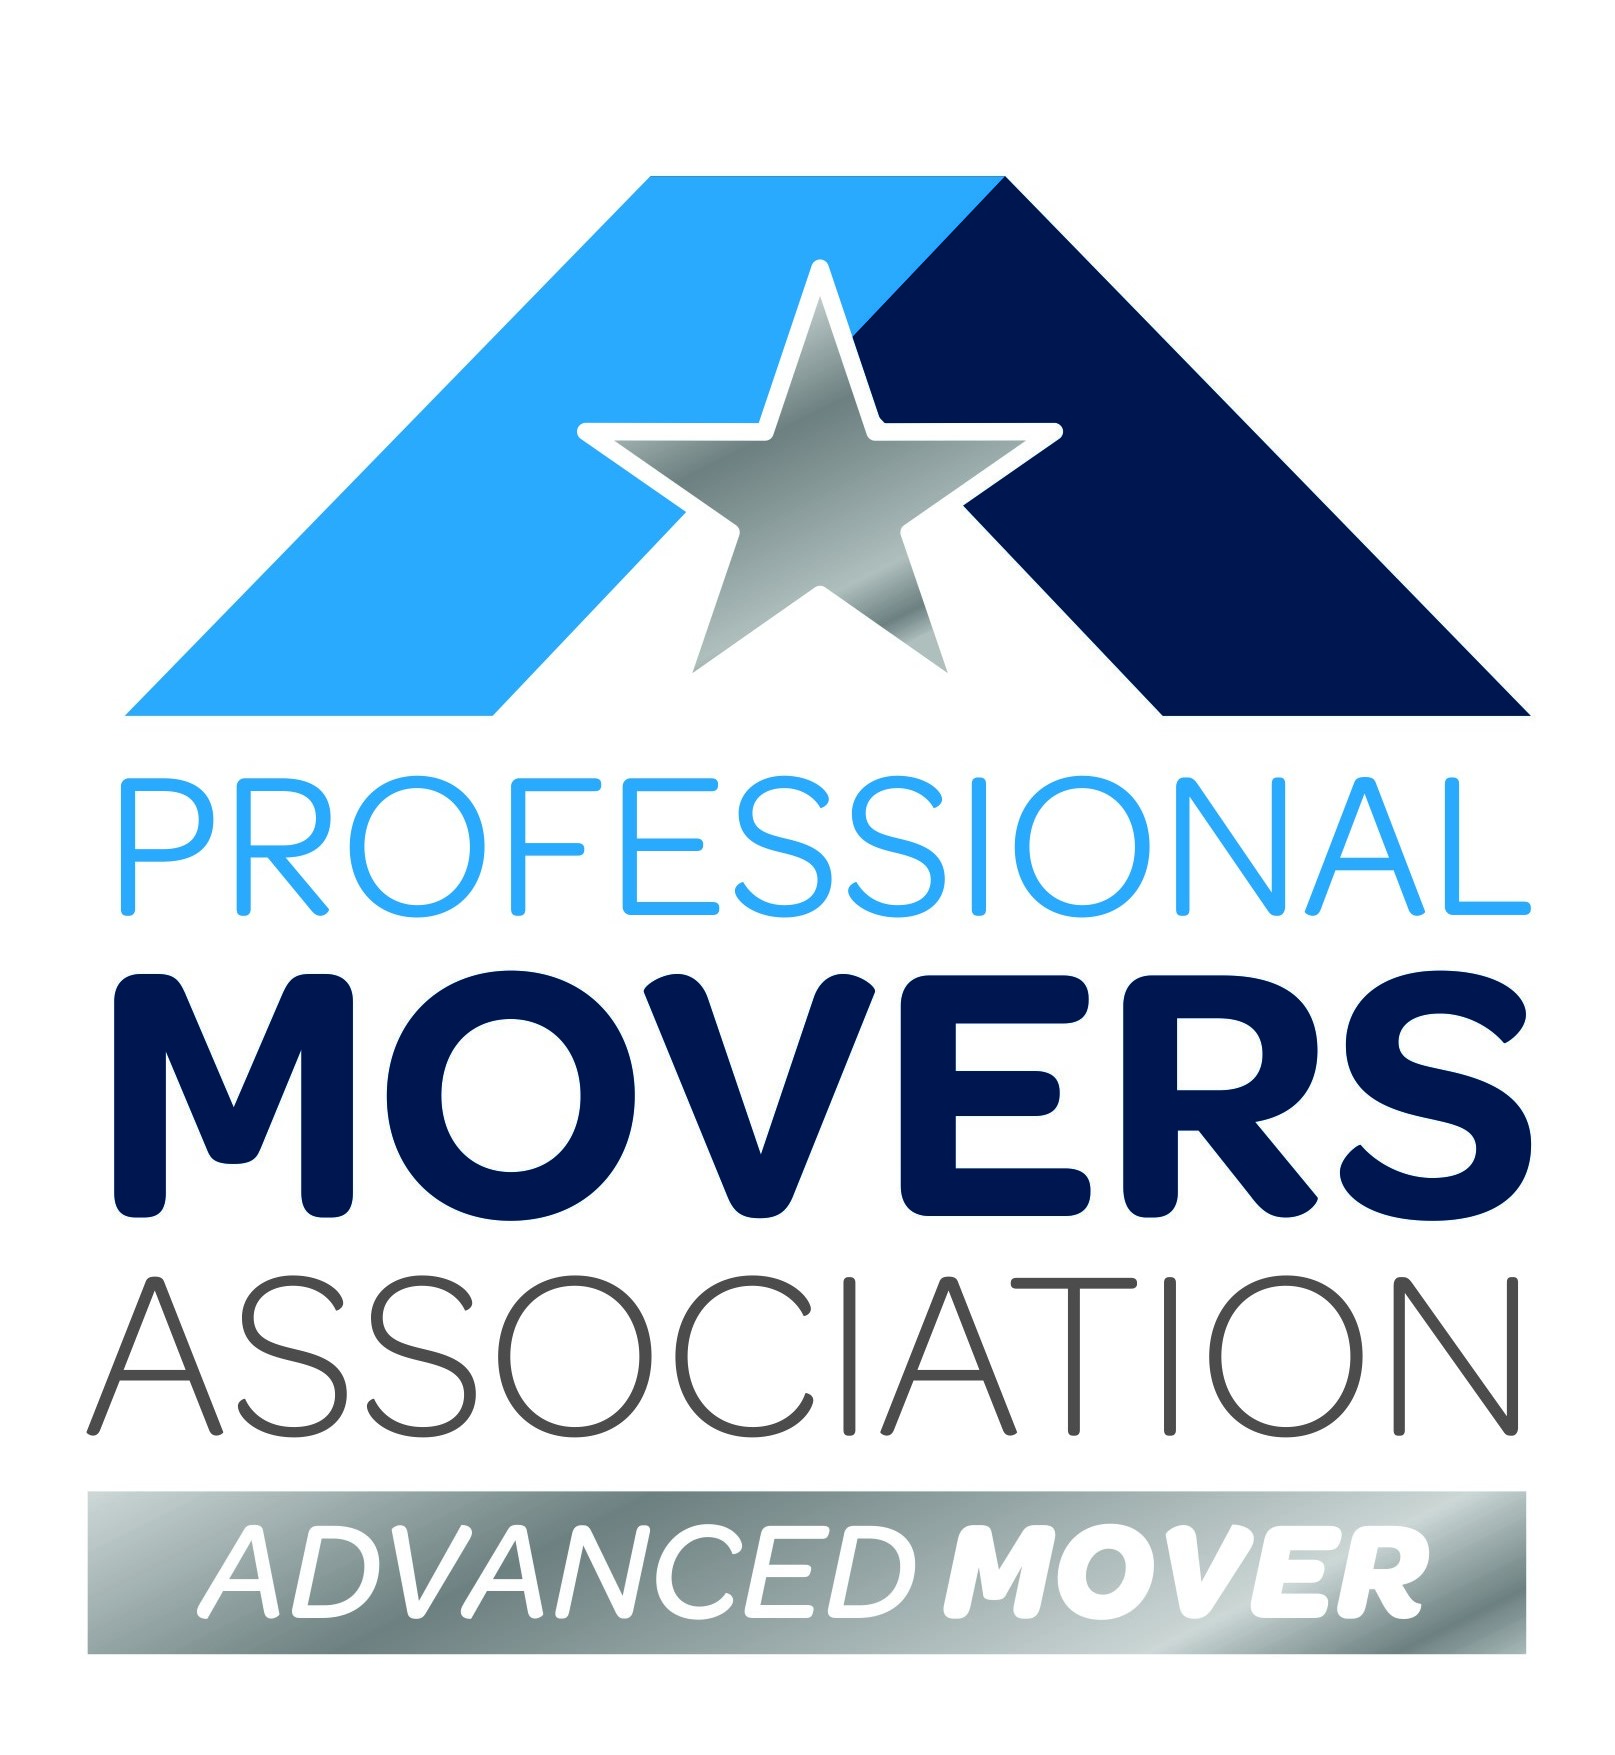 The Advanced Mover badge